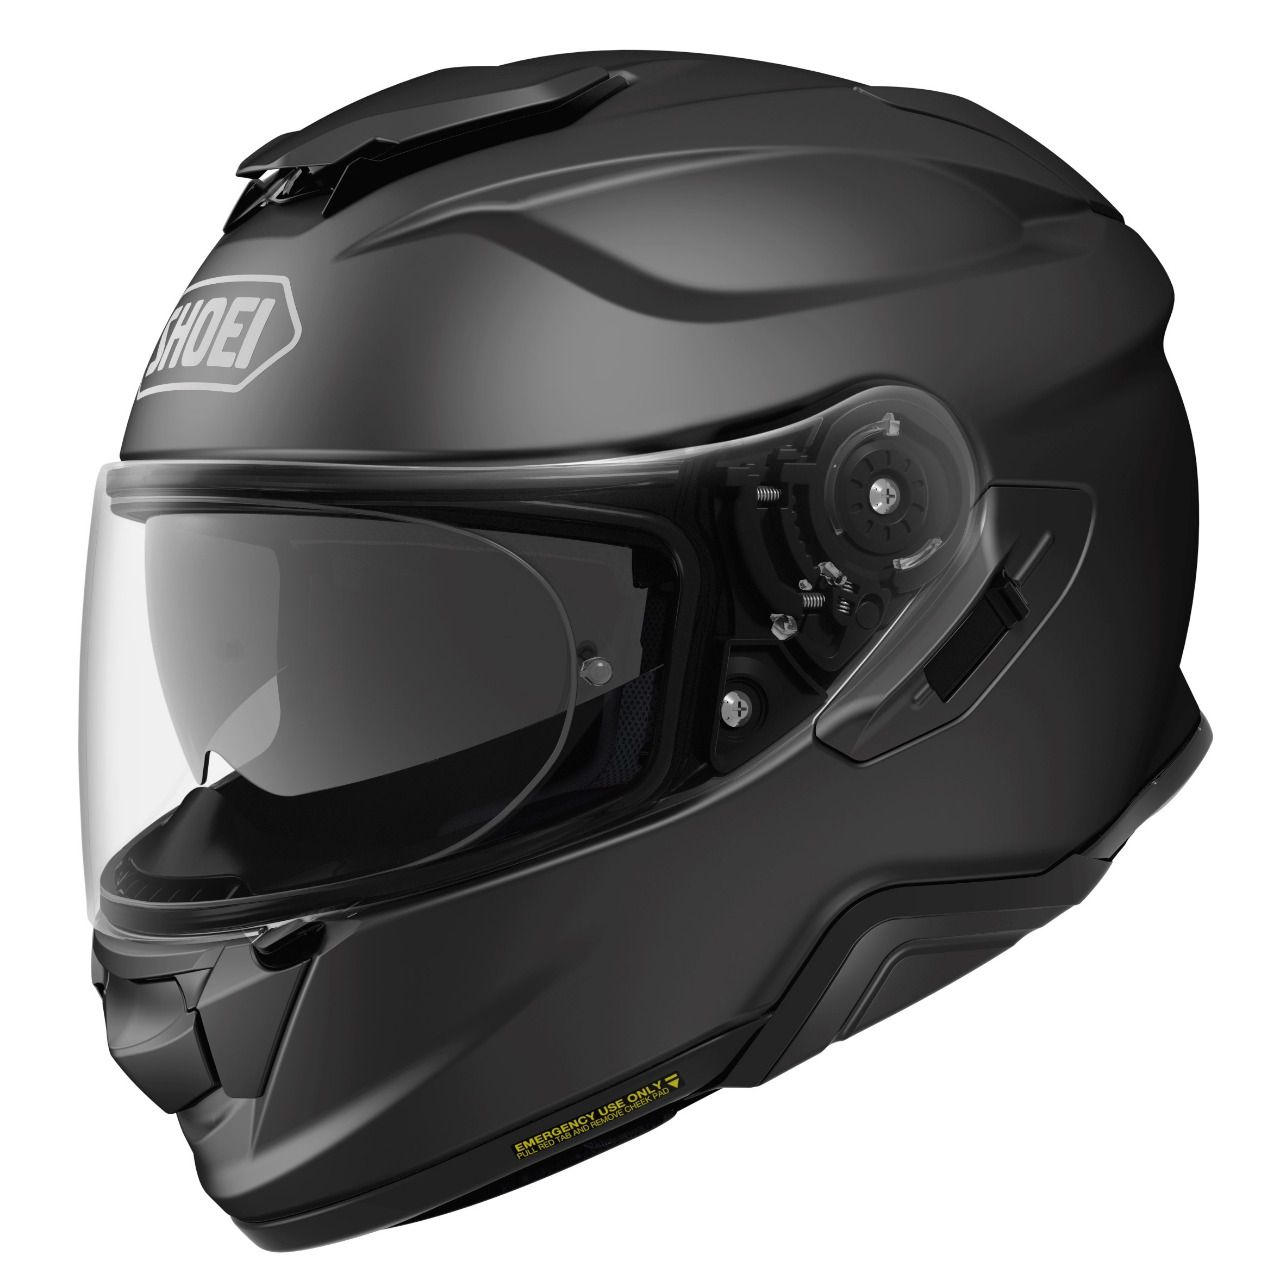 CAPACETE SHOEI GT-AIR II - Preto Fosco - Com Anti-Embaçante